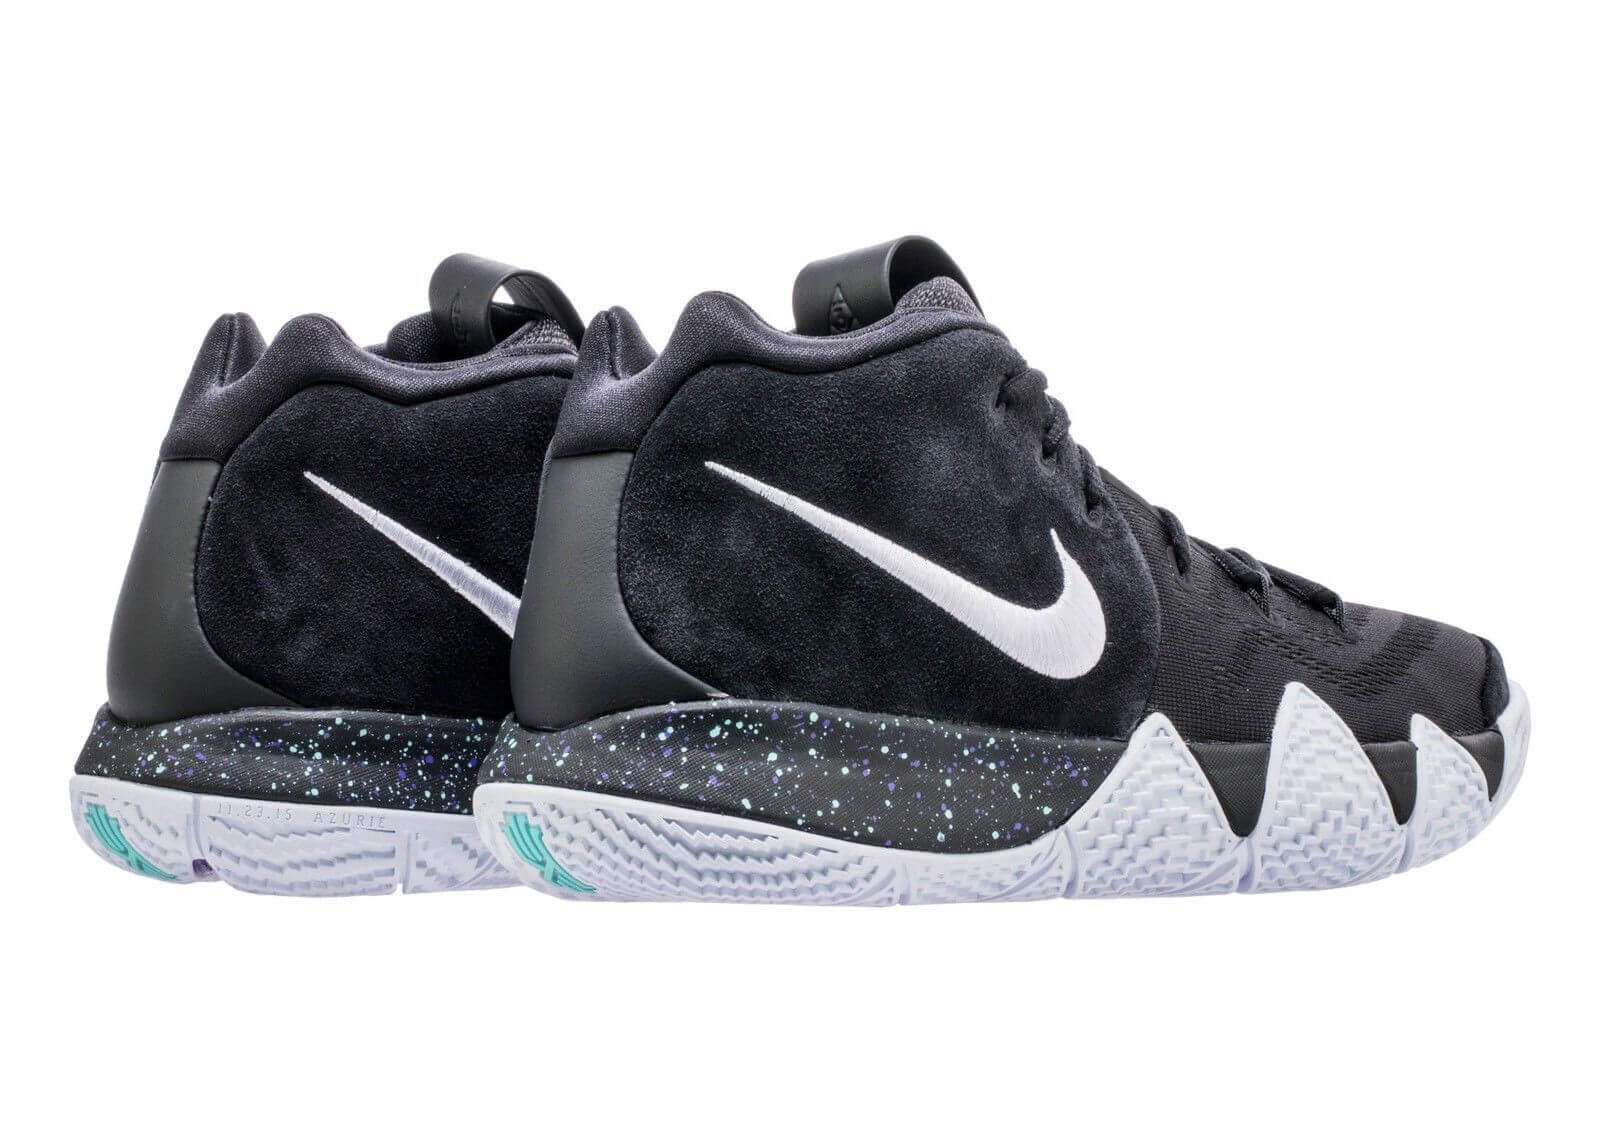 new arrival cfb05 db9fe Nike Kyrie 4 943806-002 1. Nike Kyrie 4 Black White 943806-002 Release Date  Photos  thatdope  sneakers  luxury  dope  fashion  trending